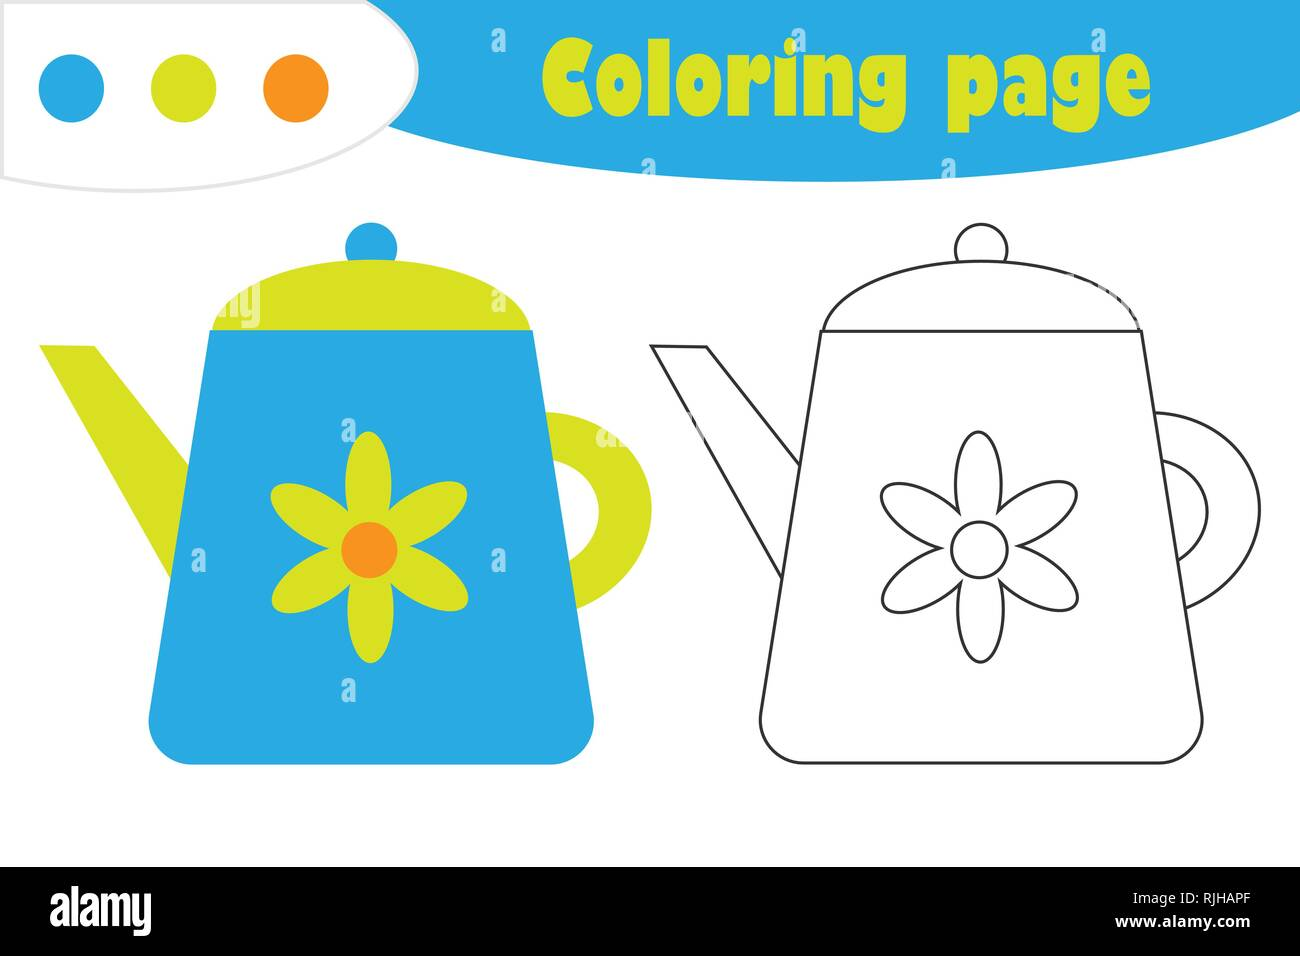 coloring page stockfotos coloring page bilder alamy. Black Bedroom Furniture Sets. Home Design Ideas